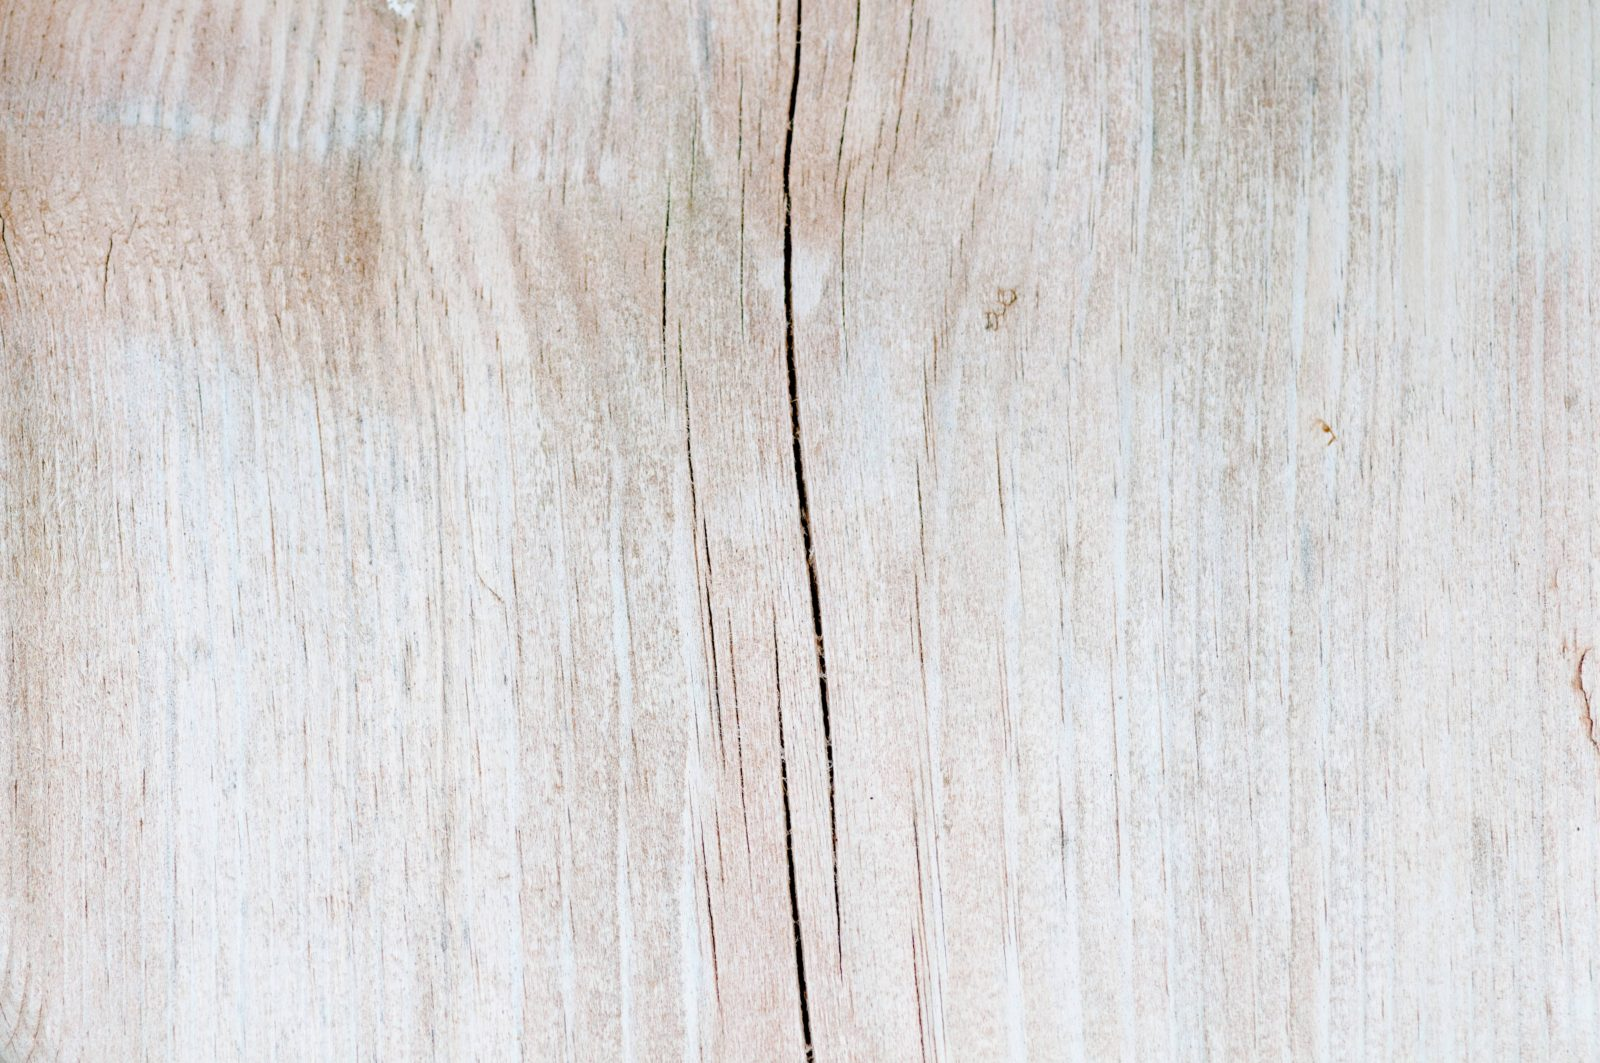 Light wood background texture with subtle cracks